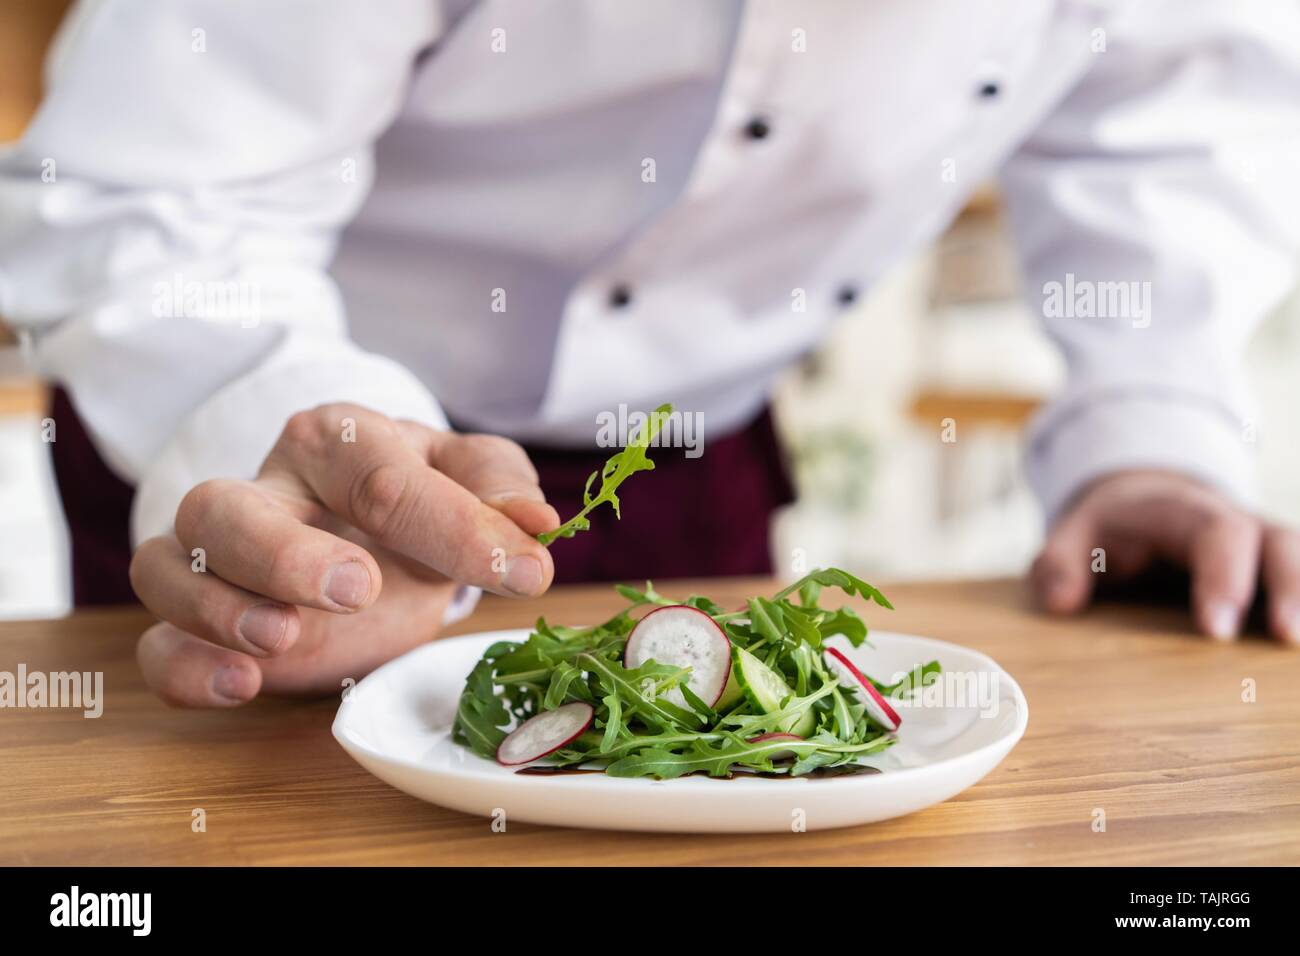 Male Cook Chef Decorating Garnishing Prepared Salad Dish On The Plate In Restaurant Commercial Kitchen Stock Photo Alamy